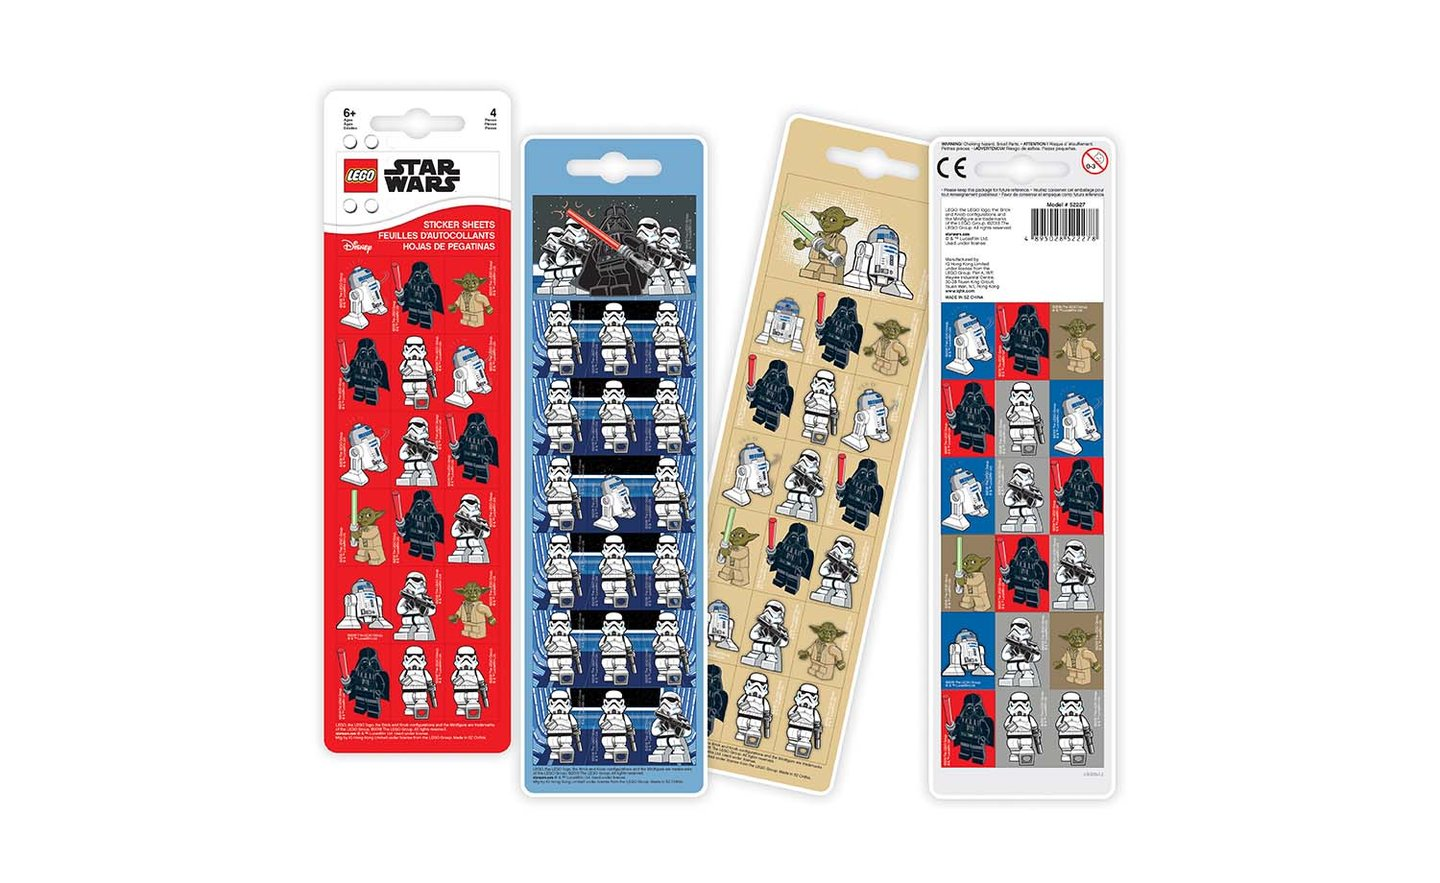 LEGO Star Wars - Sticker Sheets (4 Sheets)